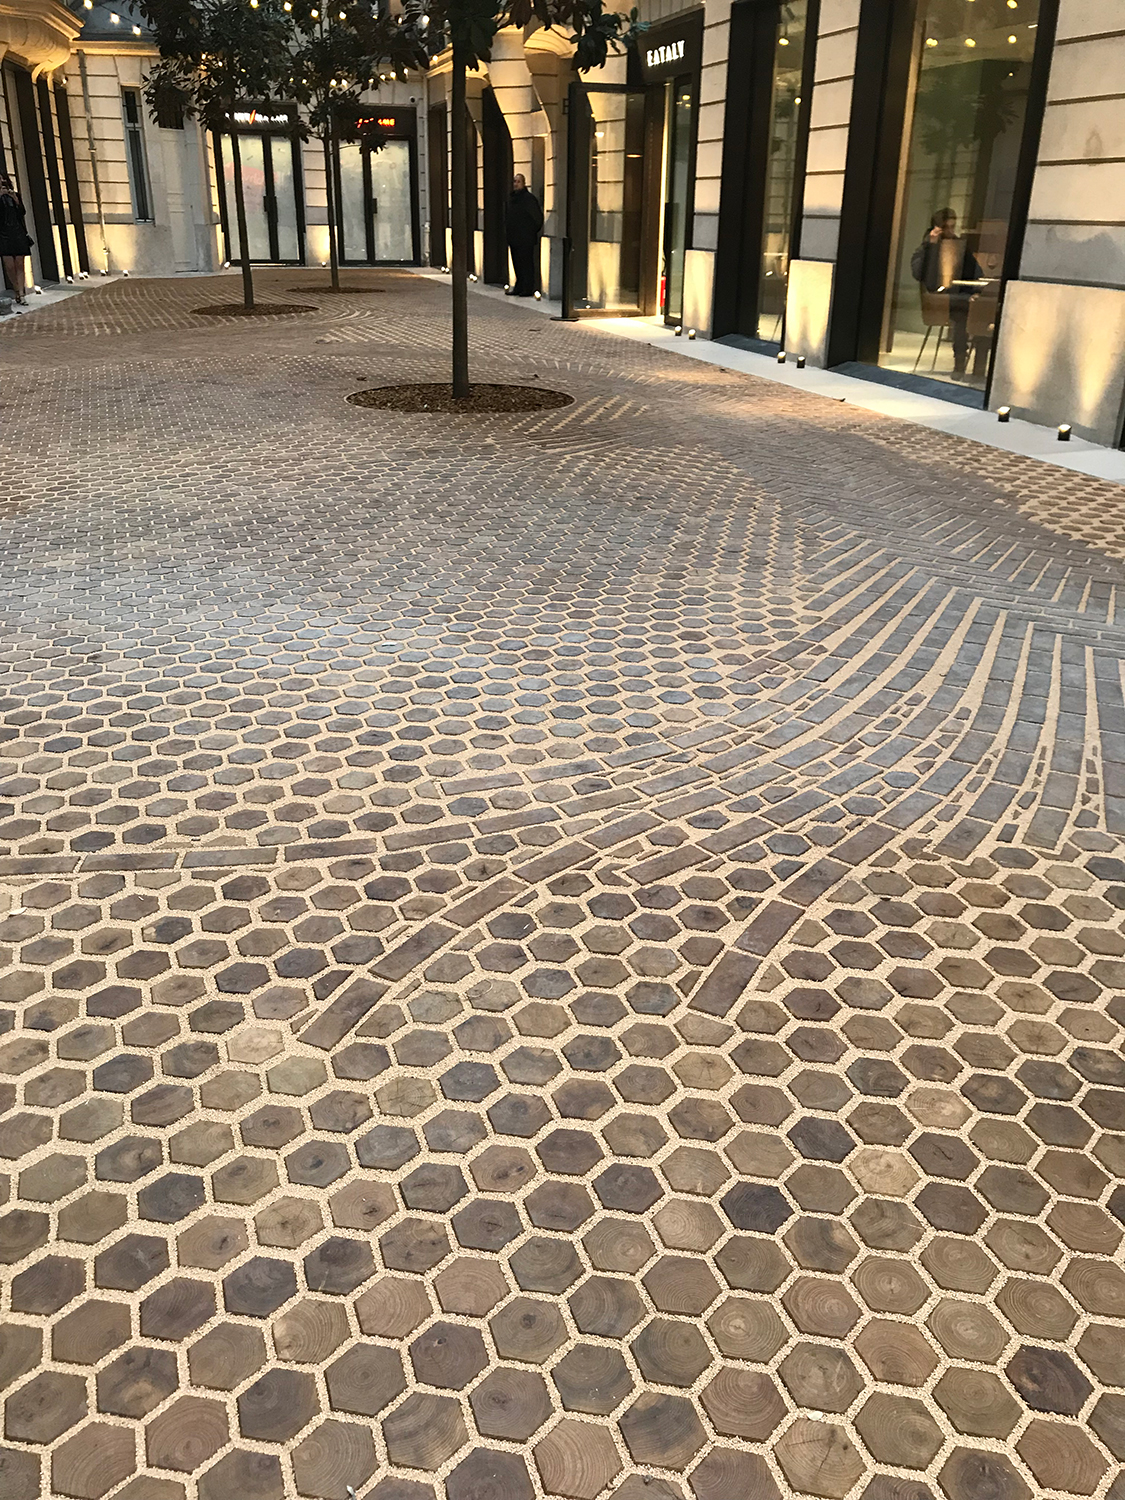 Les-Cours-de-BHV-Galeries-Lafayette-Paris-le-Marasi-retail-France-Hôtel-de-Ville-courtyard-shopping-Jamie-Fobert-Architects-wooden-floor-timber-paving